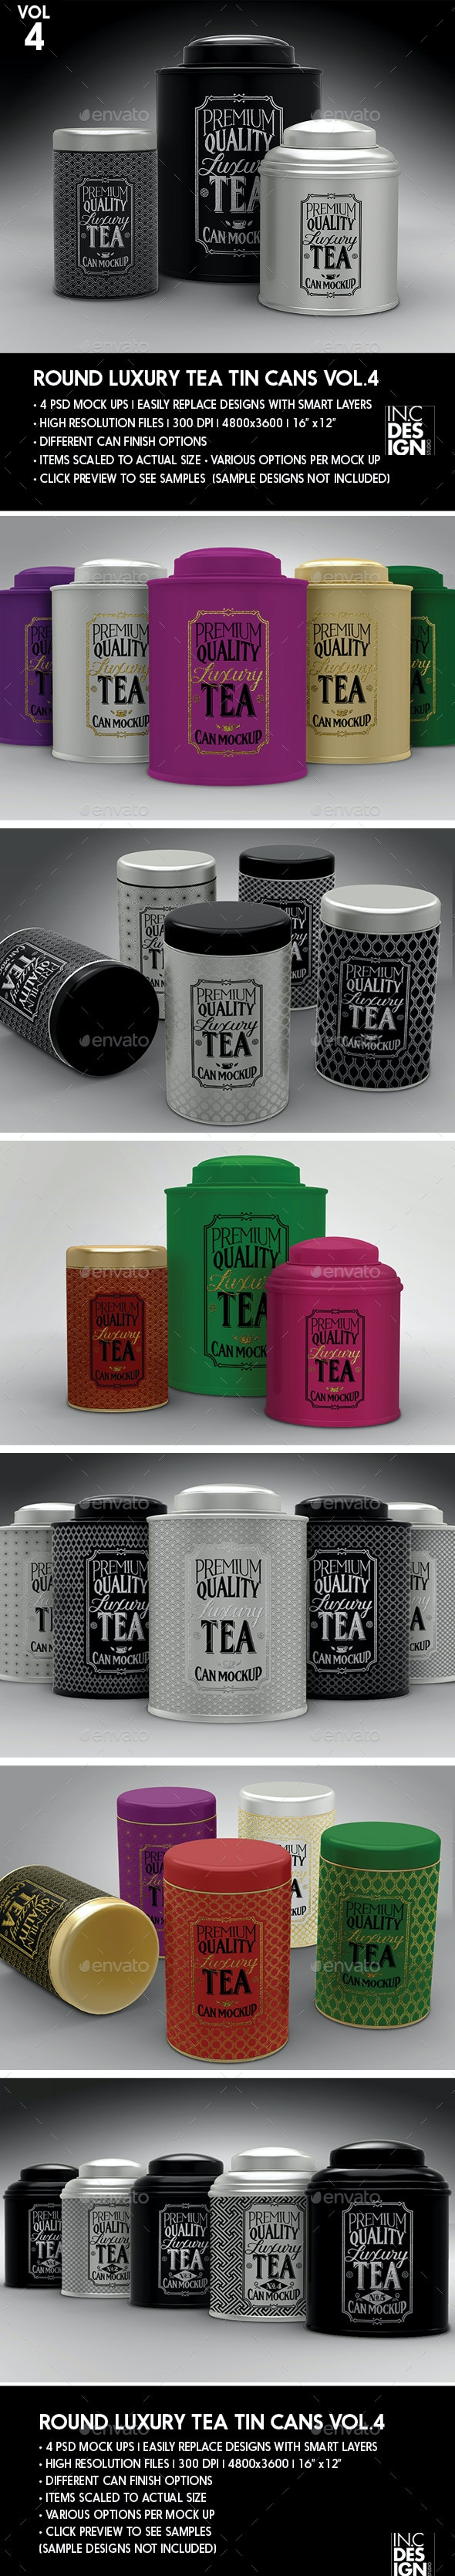 Round Luxury Tea Tin Cans Packaging Mock Ups - Food and Drink Packaging